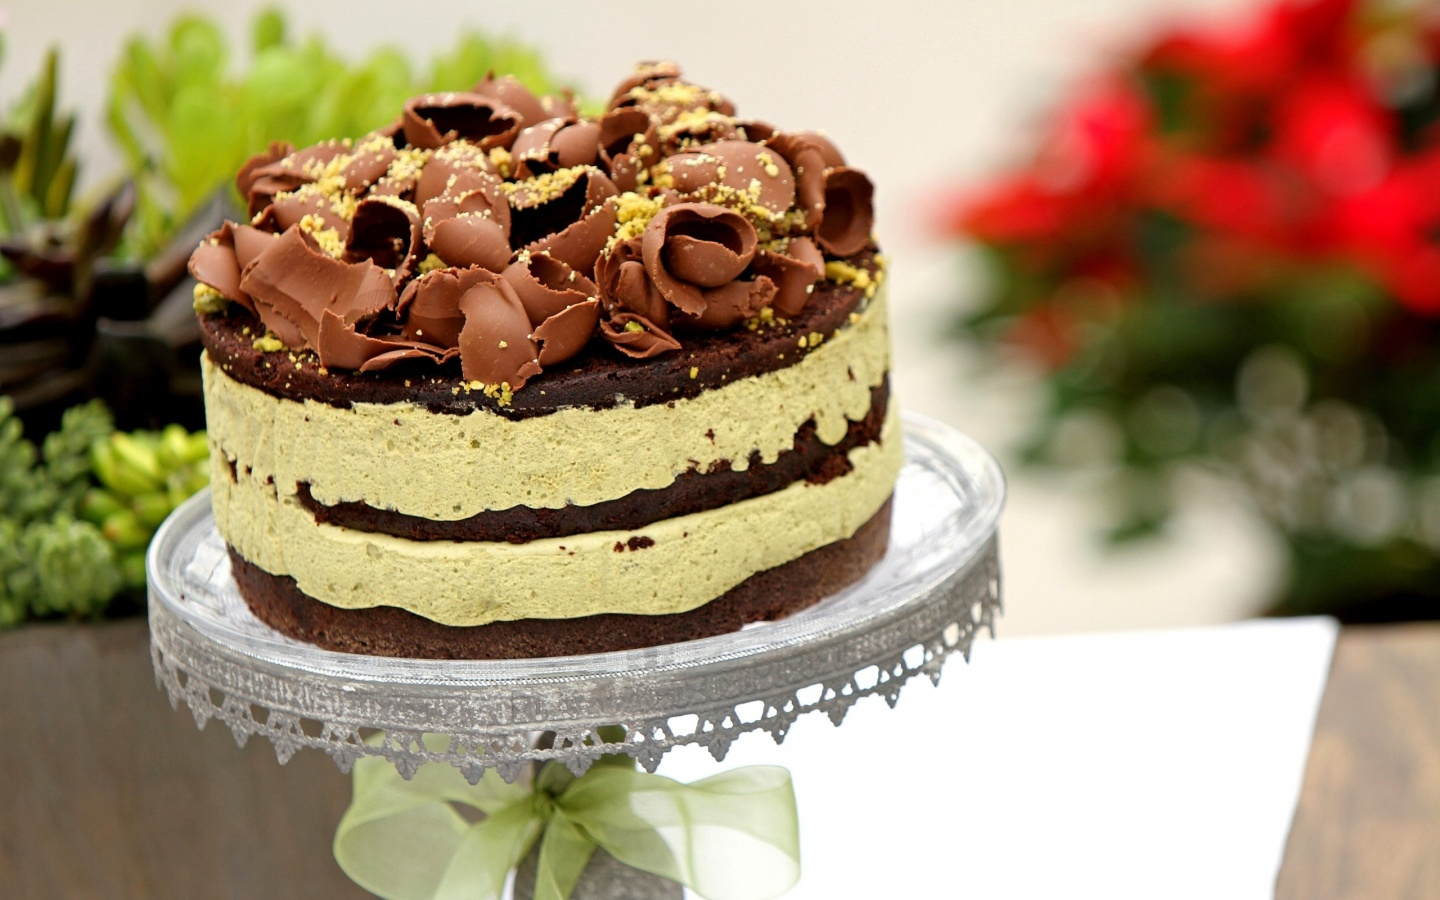 Sweet Dessert Cake Wallpapers - 1440x900 - 364801